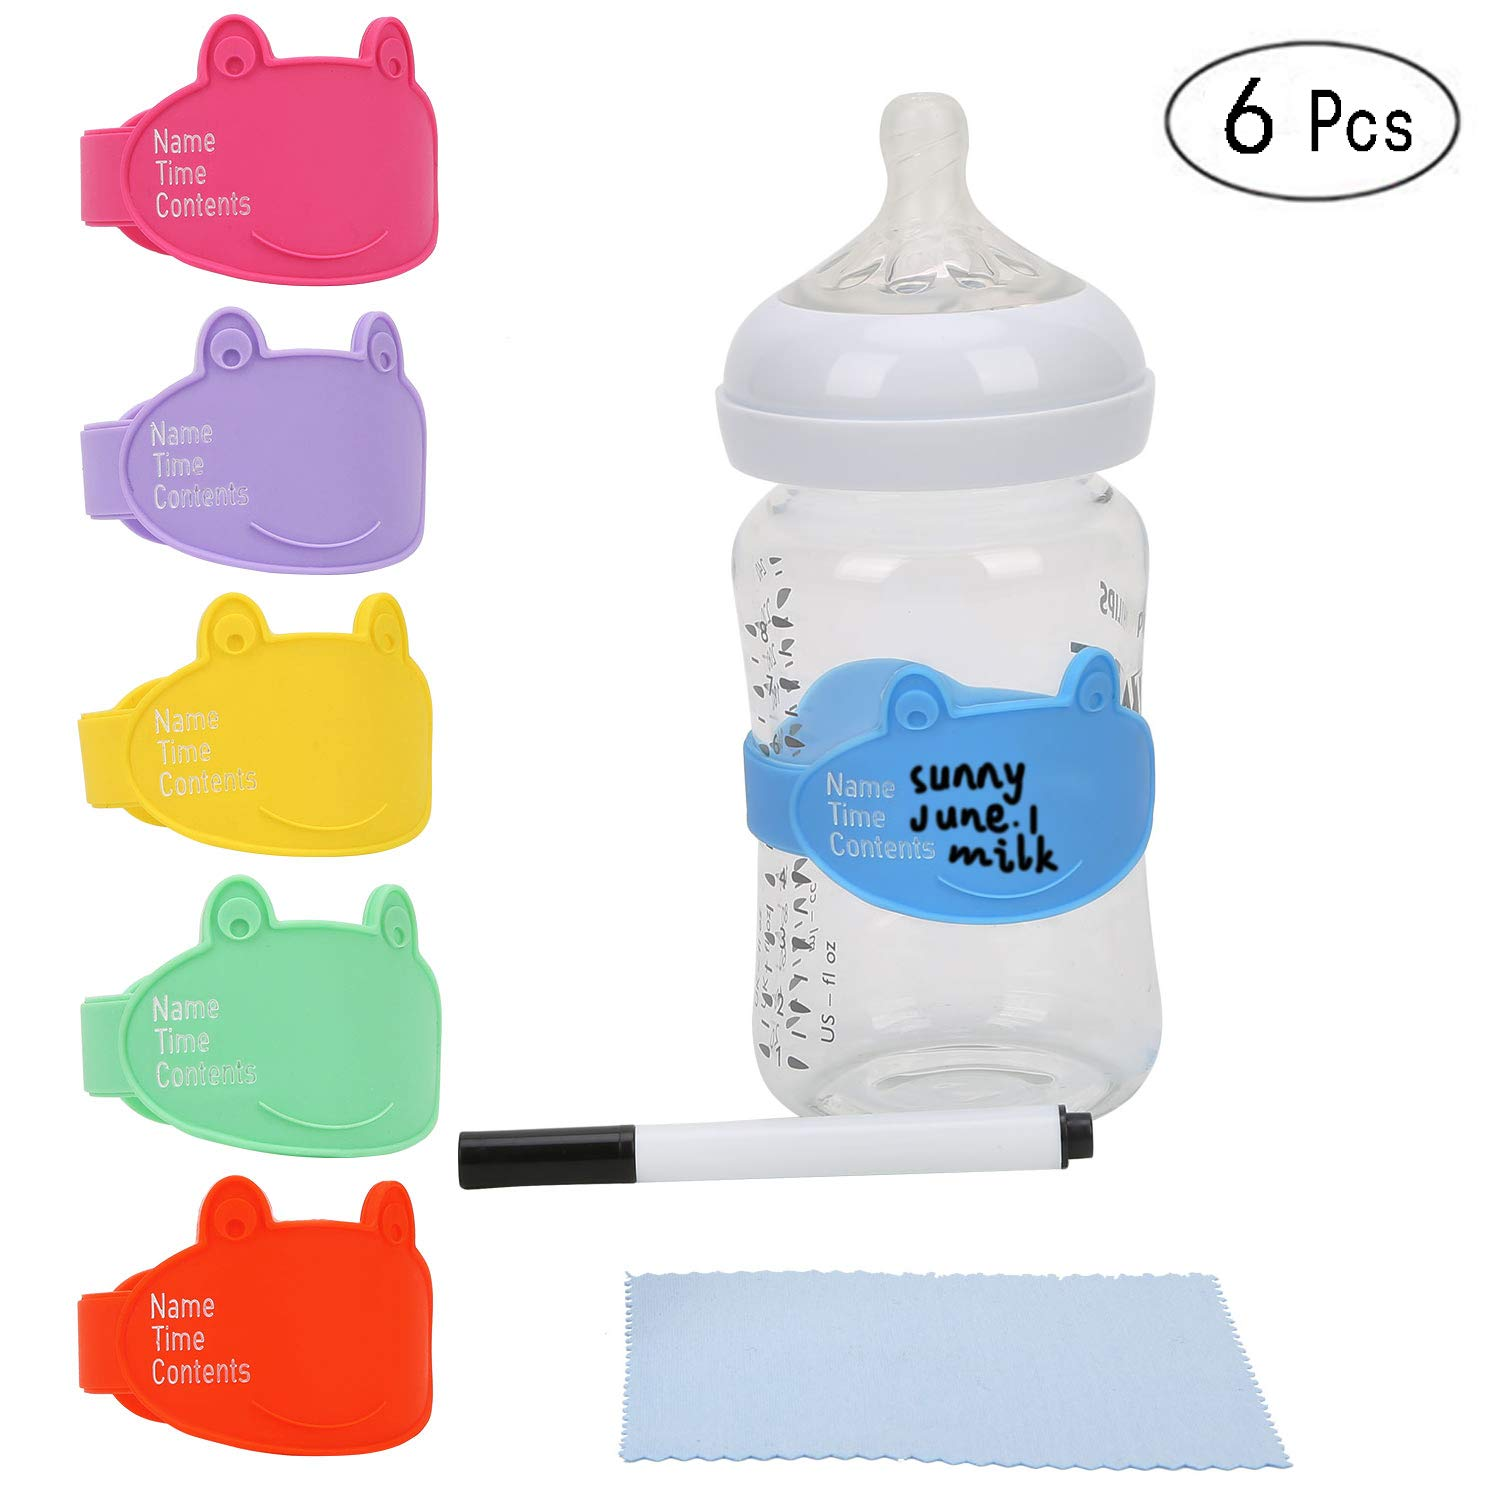 Baby Bottle Labels for Daycare, Durable Writable Reusable Food -Grade Silicone 6 Pack Baby Bottle Labels with Dry Erase Marker Foretoo by FORETOO